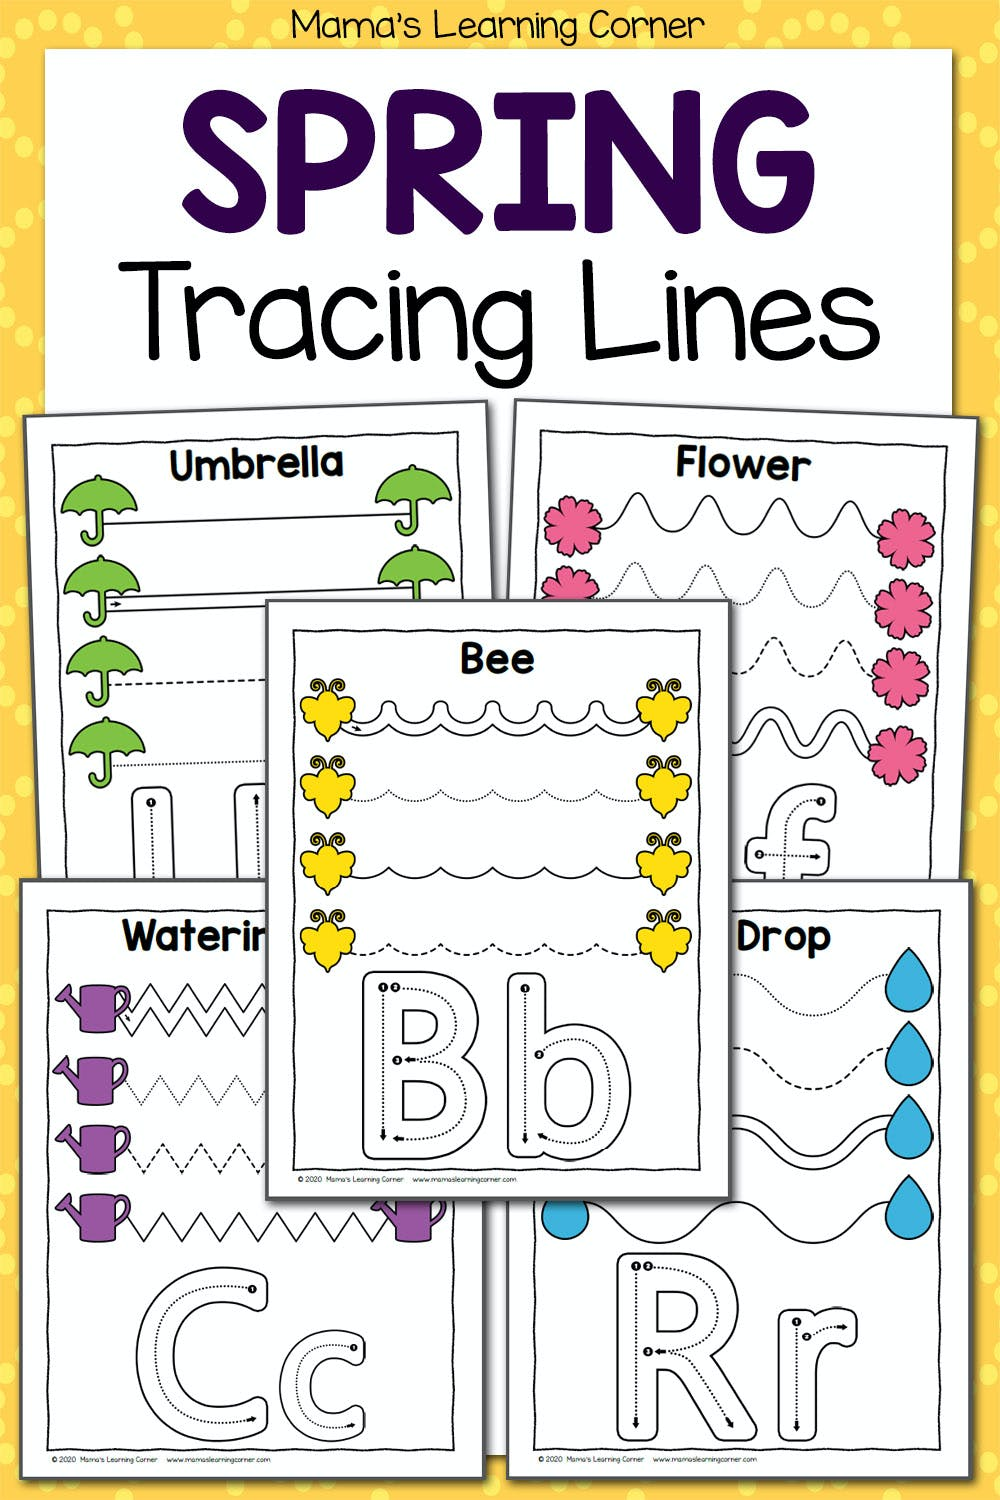 hight resolution of Spring Tracing Worksheets for Preschool - Mamas Learning Corner